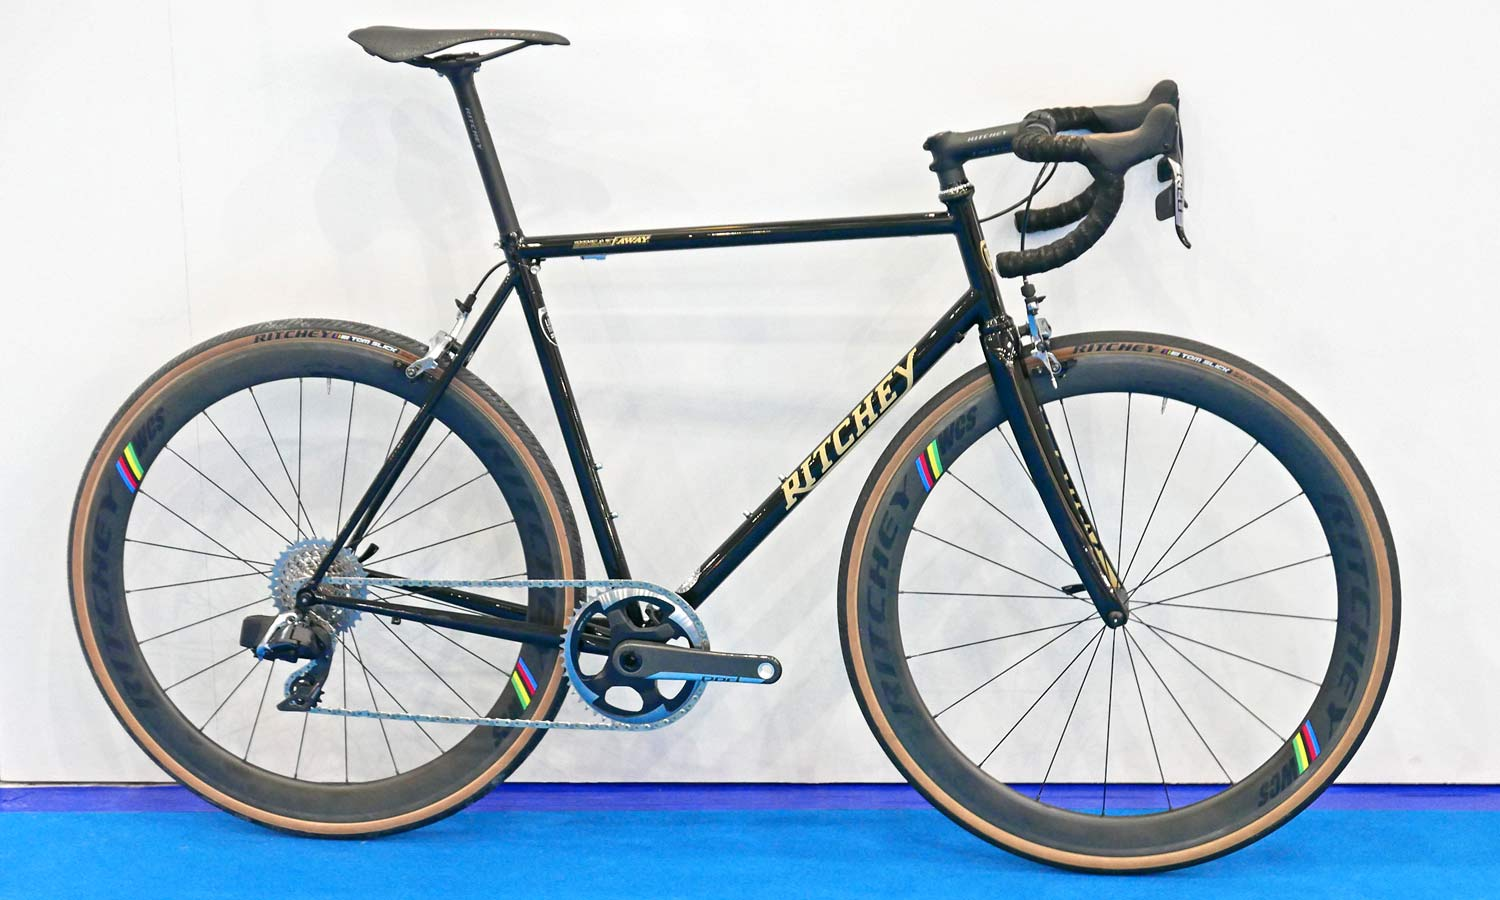 Ritchey Logic Break-Away Road, all steel frames refreshed for 2019 with a new modern look